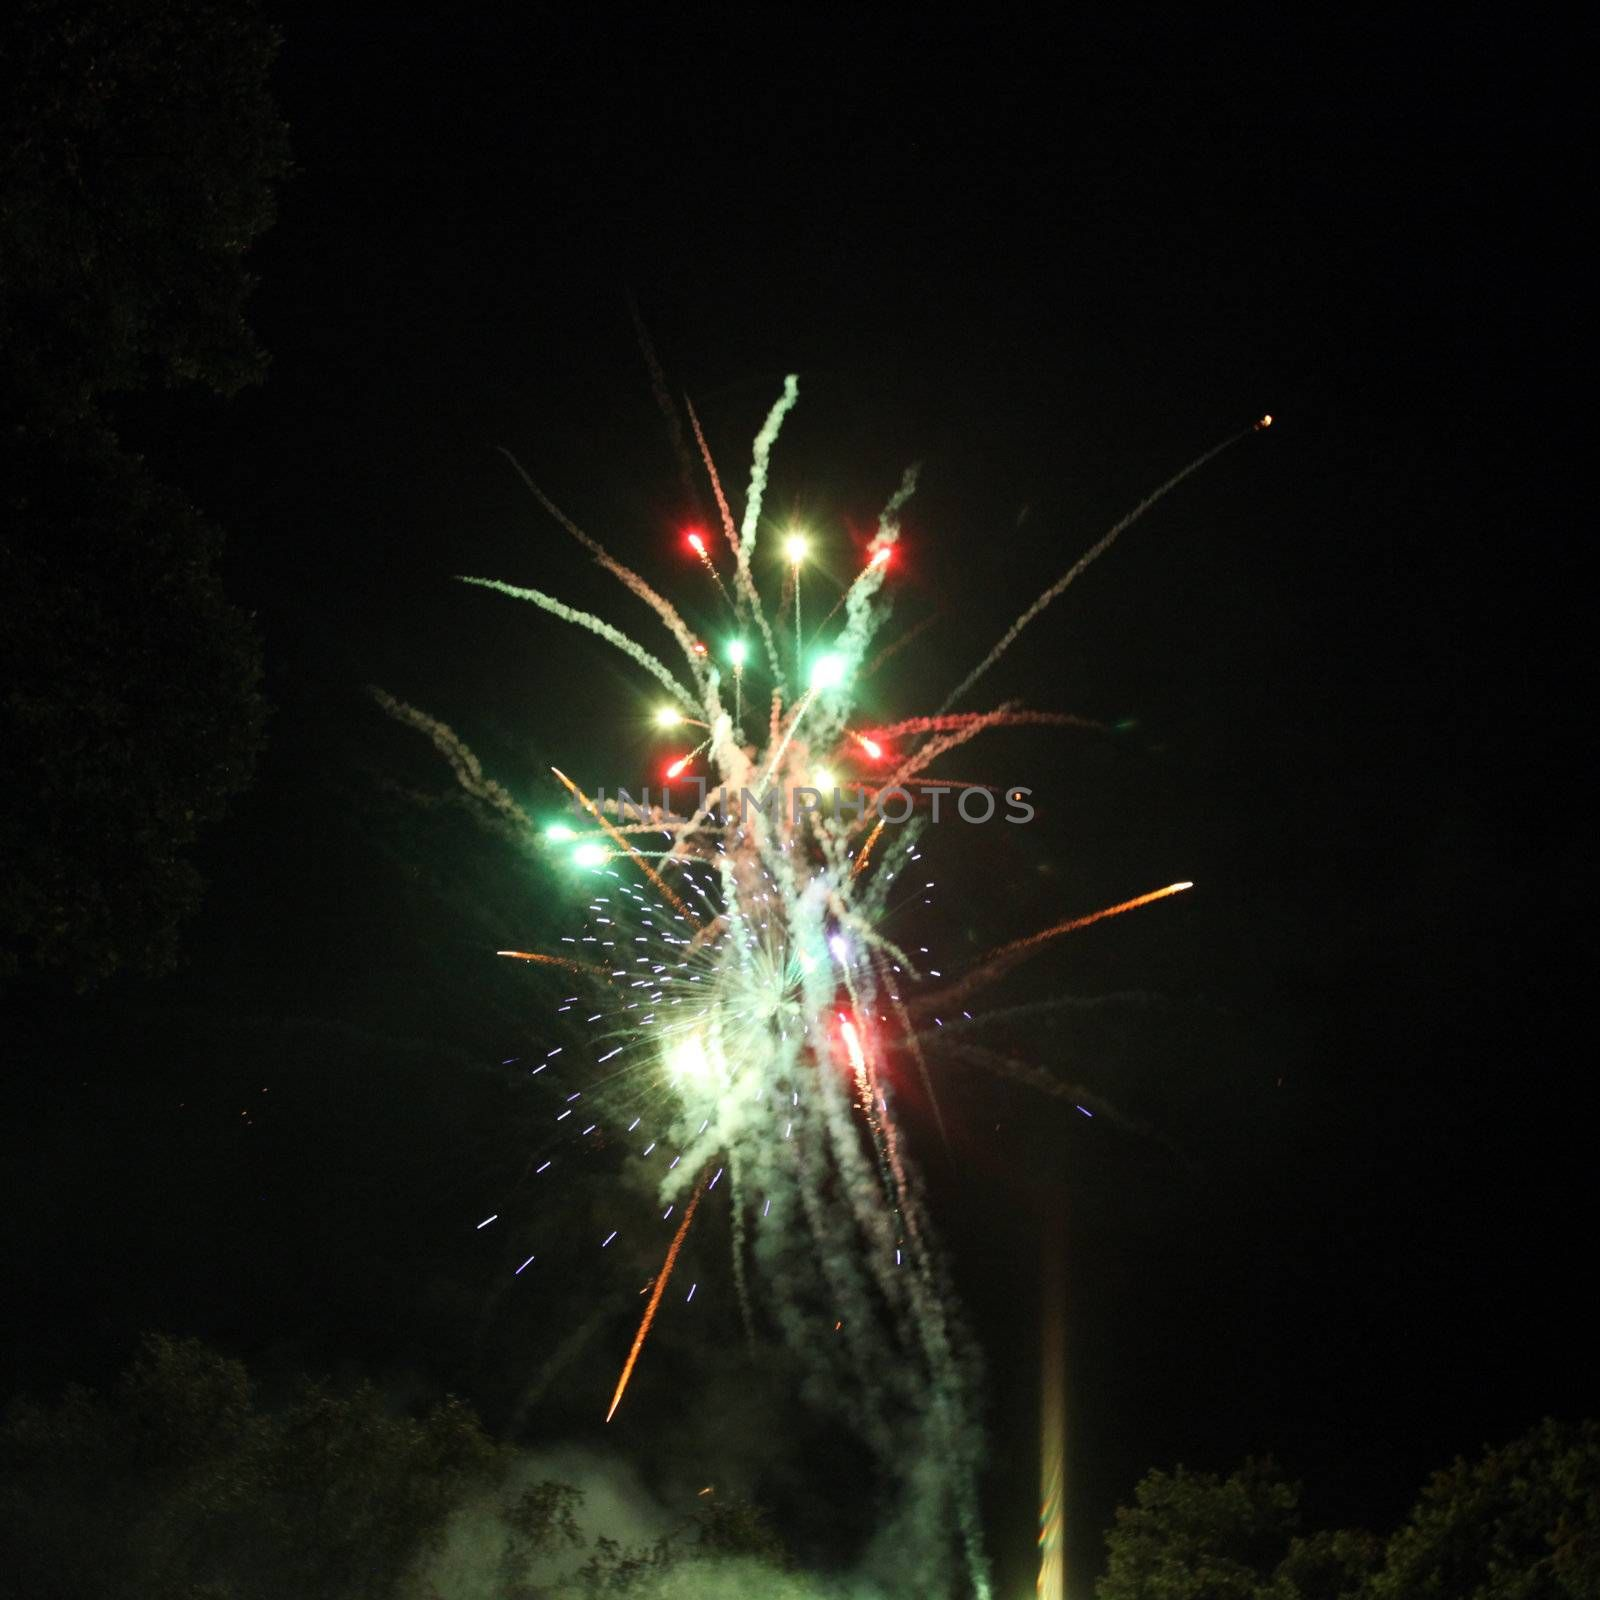 Colorful festive fireworks display lighting up the dark night sky with bursts of fiery red and green